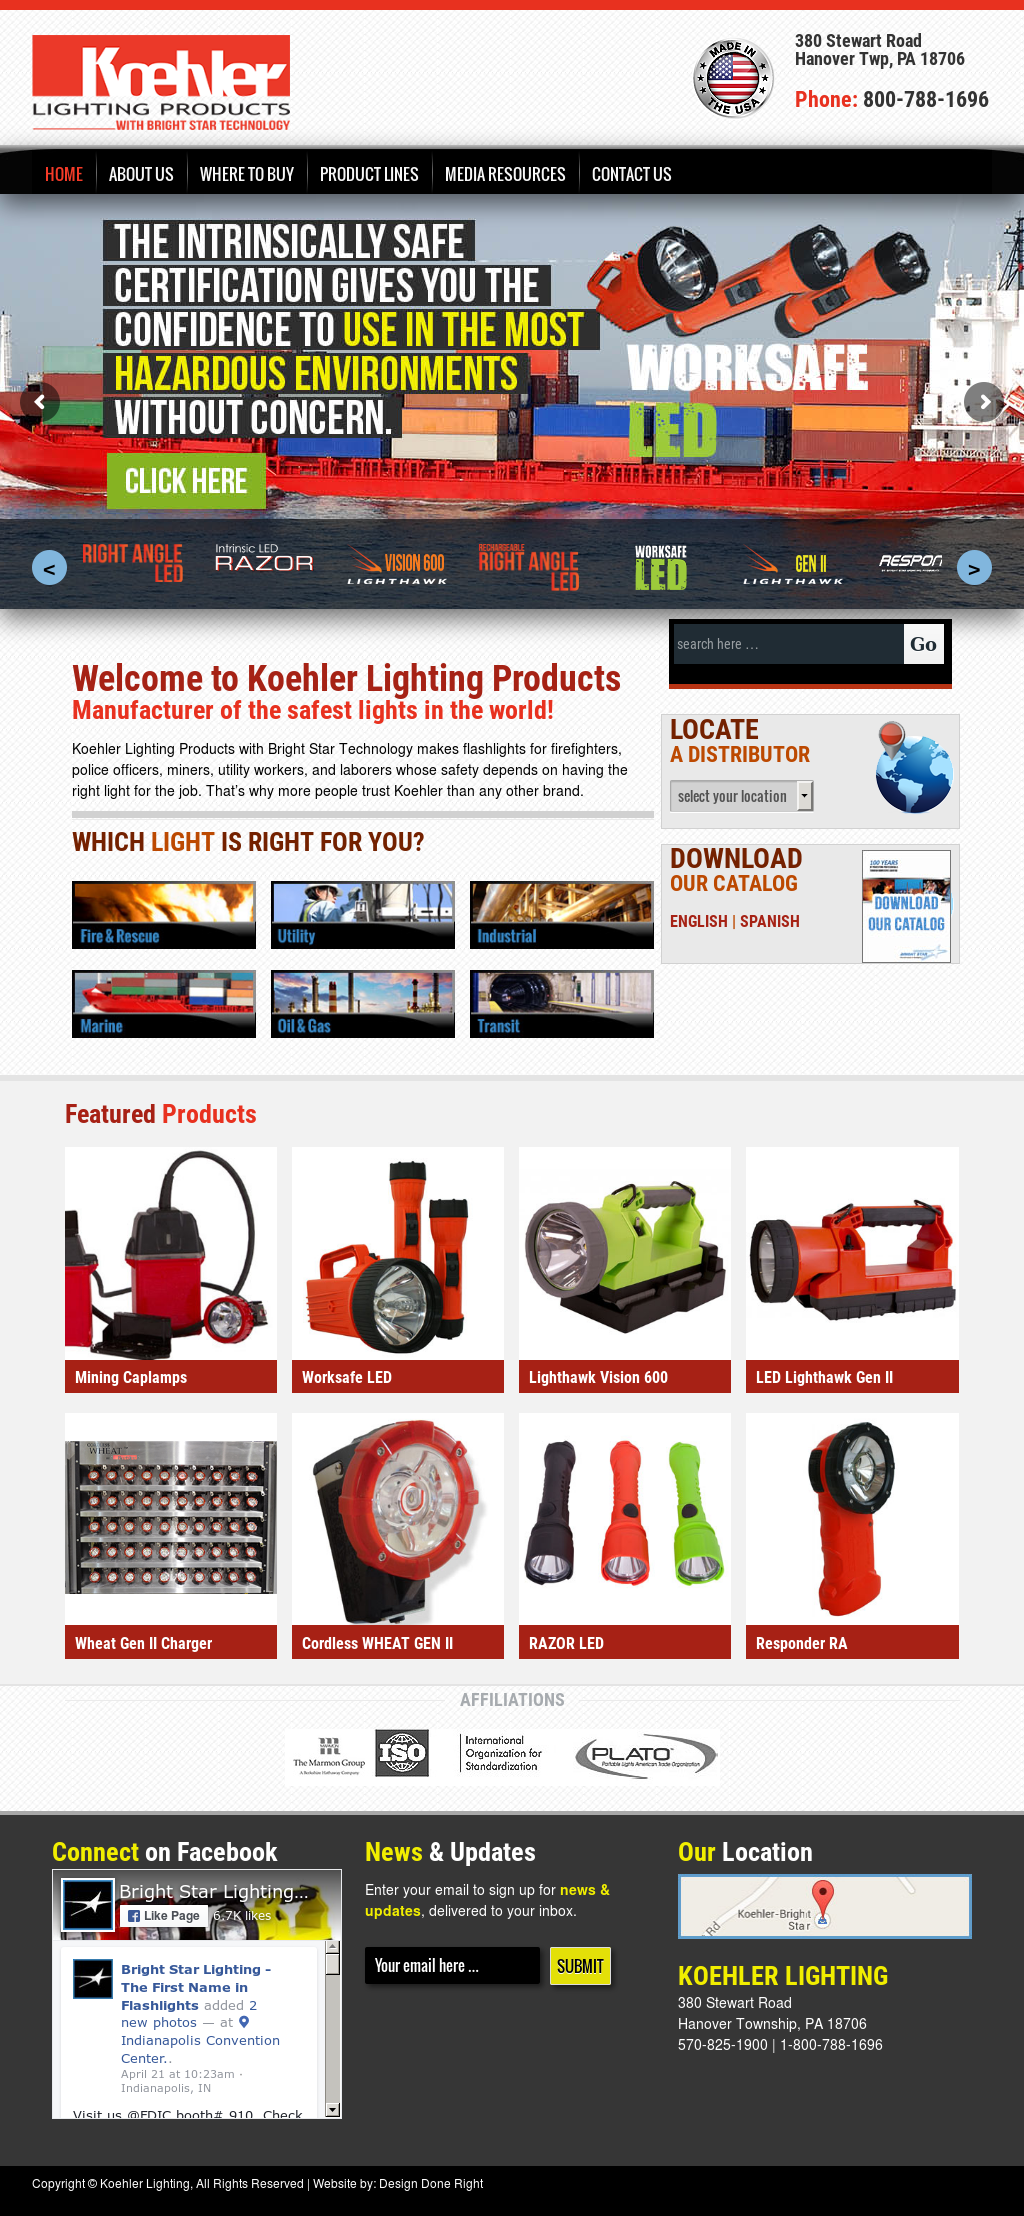 Koehler Lighting Products Competitors Revenue and Employees - Owler Company Profile  sc 1 st  Owler & Koehler Lighting Products Competitors Revenue and Employees - Owler ...